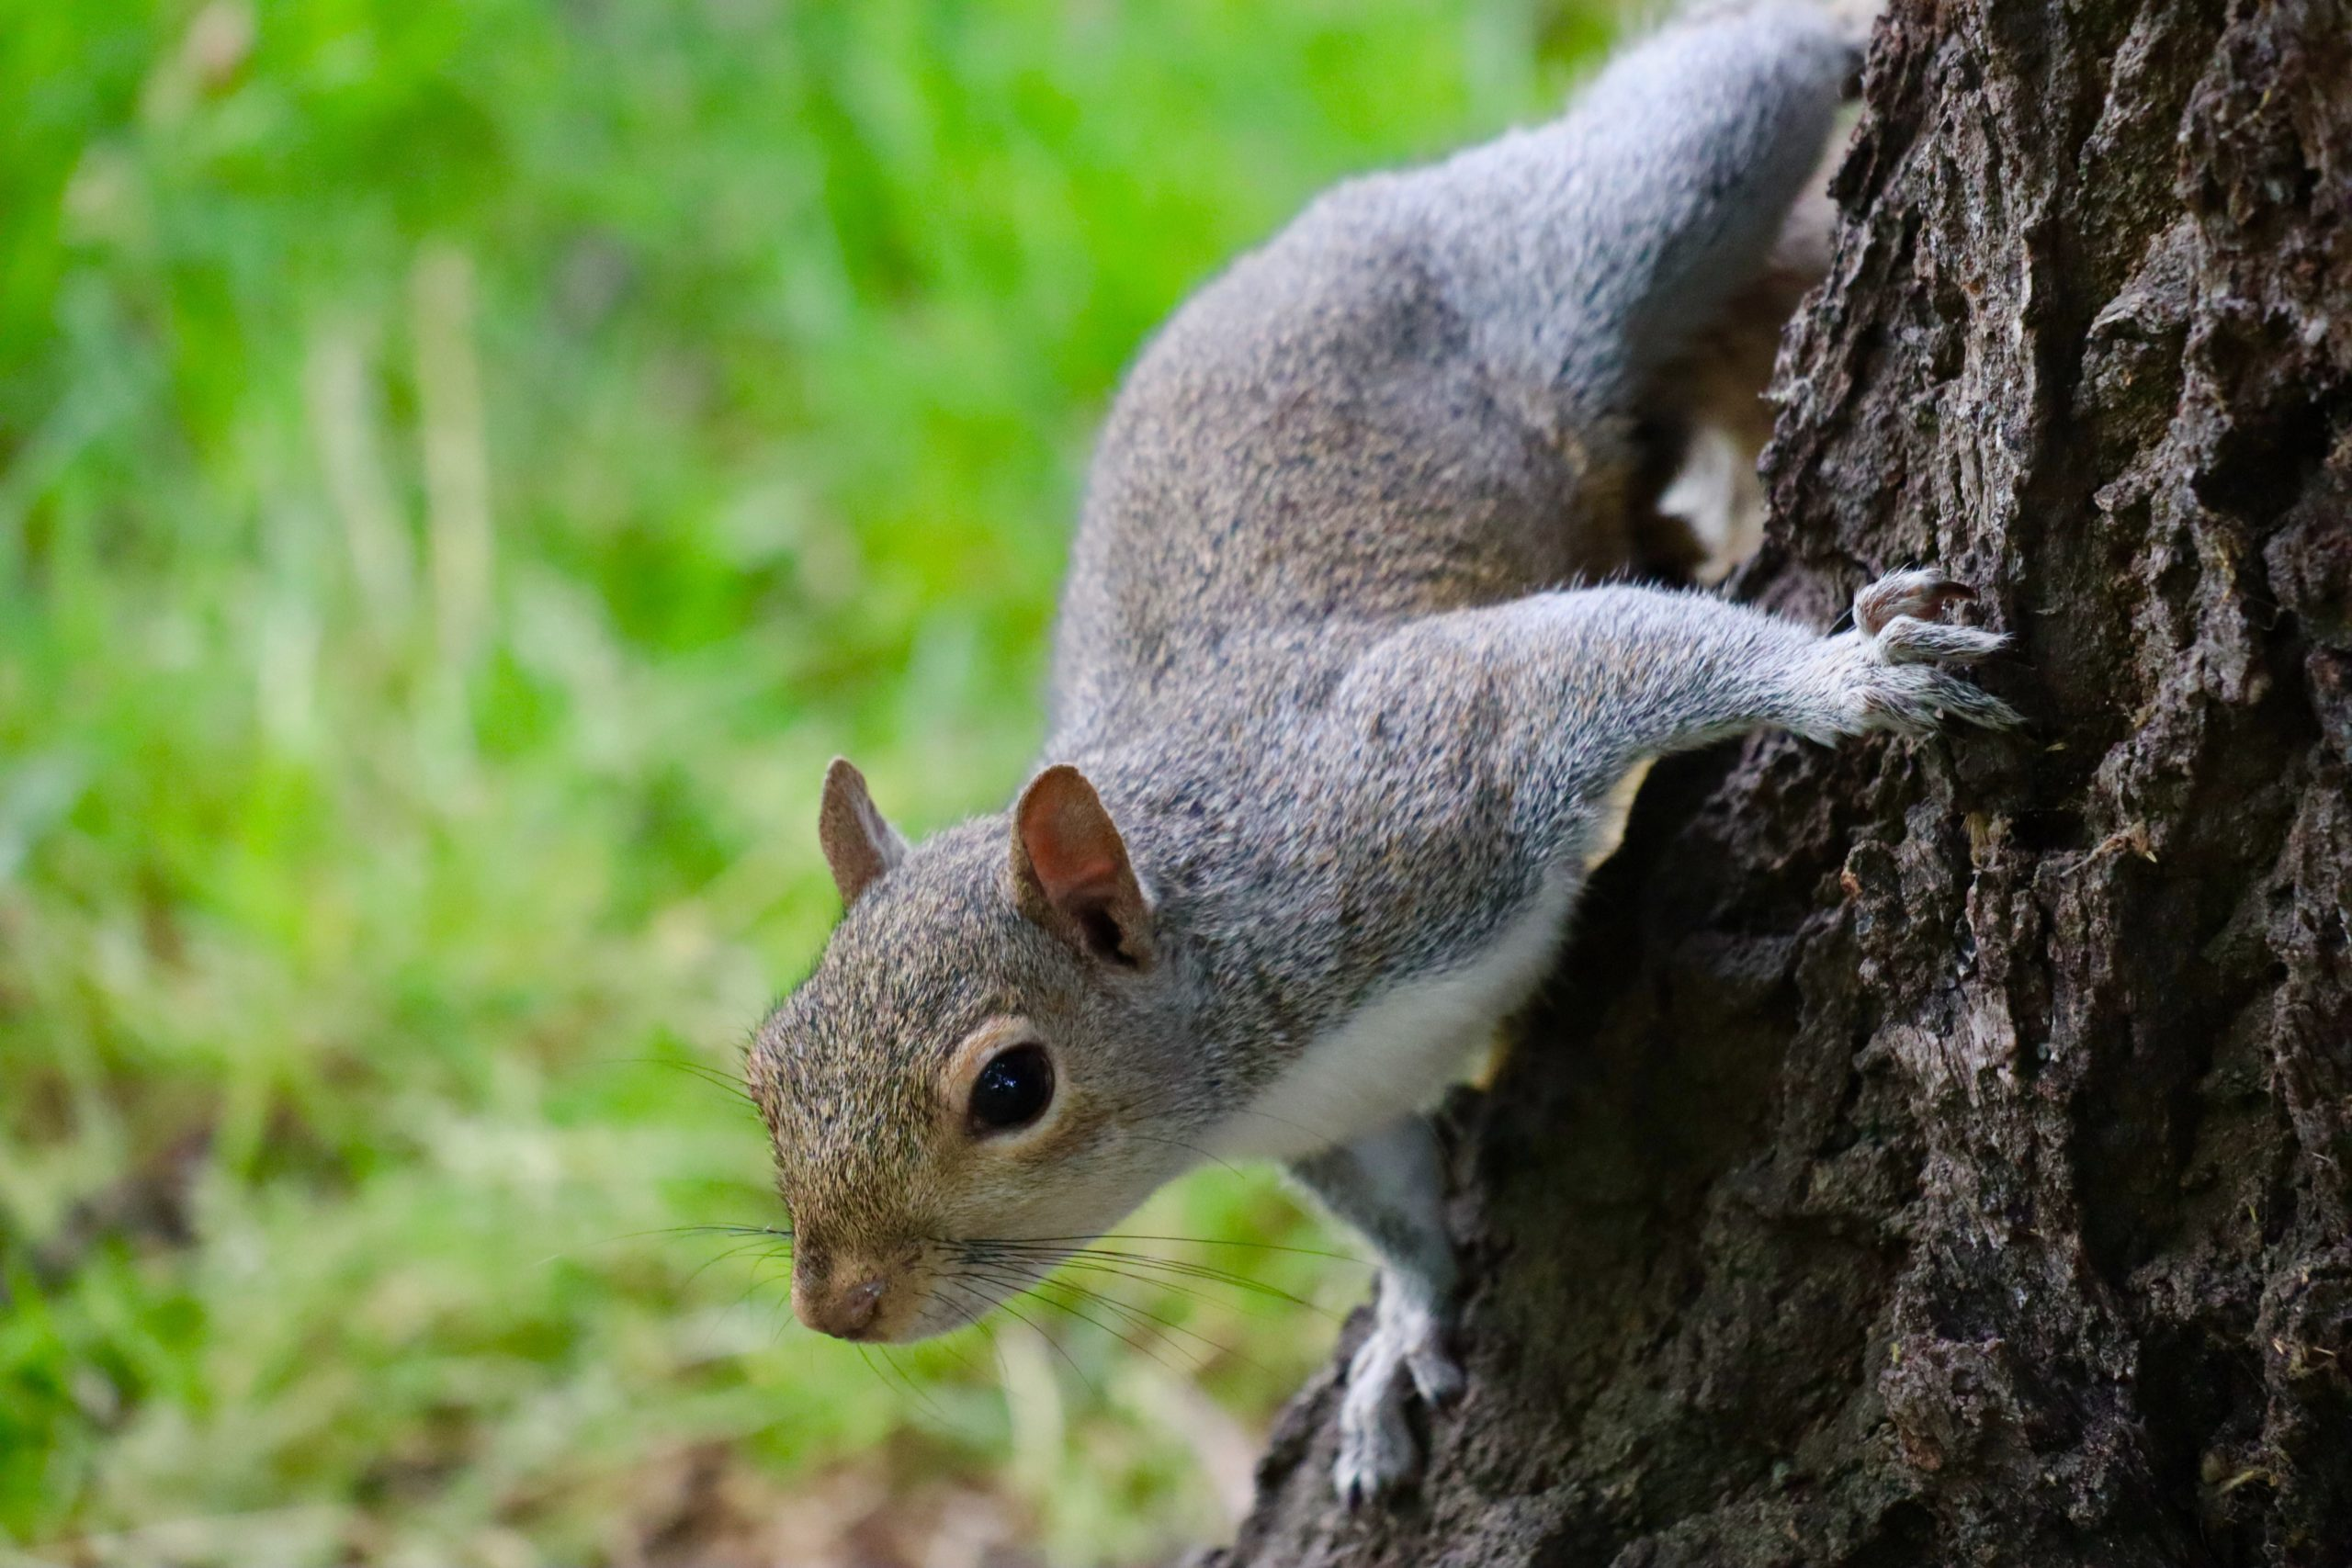 Picture of common gray squirrel climbing tree